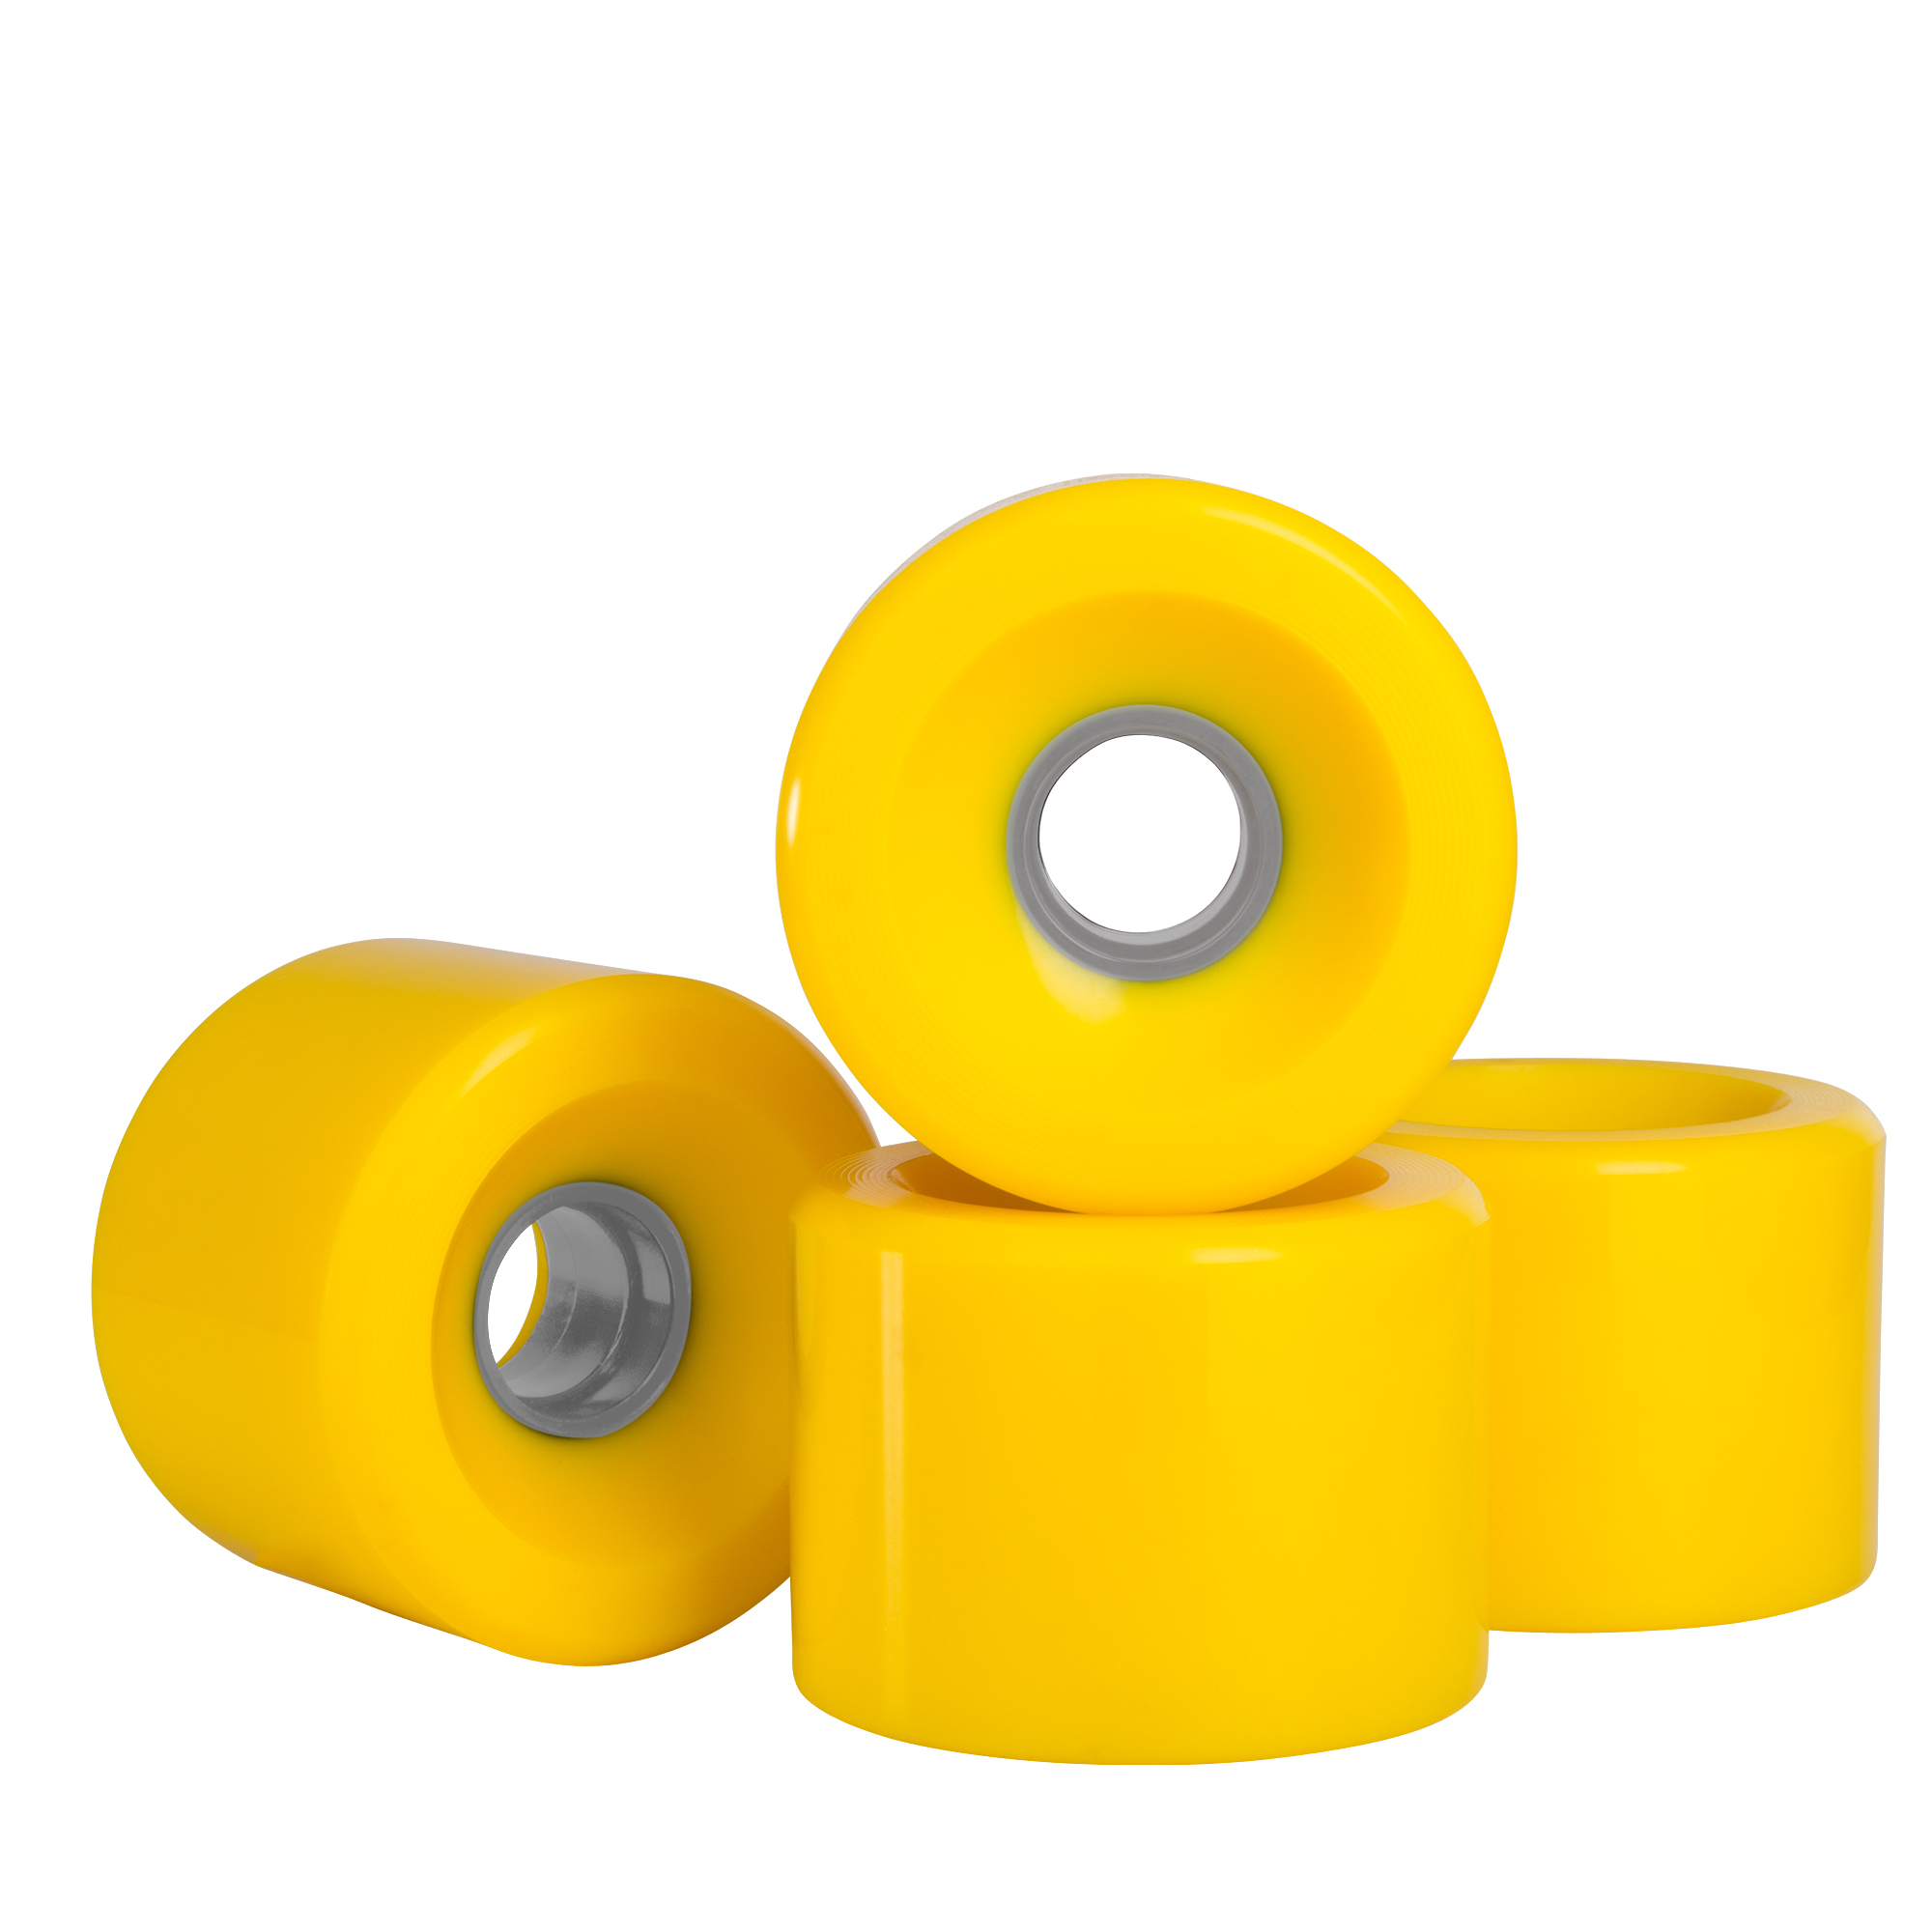 Cal 7 Polyurethane Skateboard Wheels for Street and Park 60x44mm 83A (Solid White)